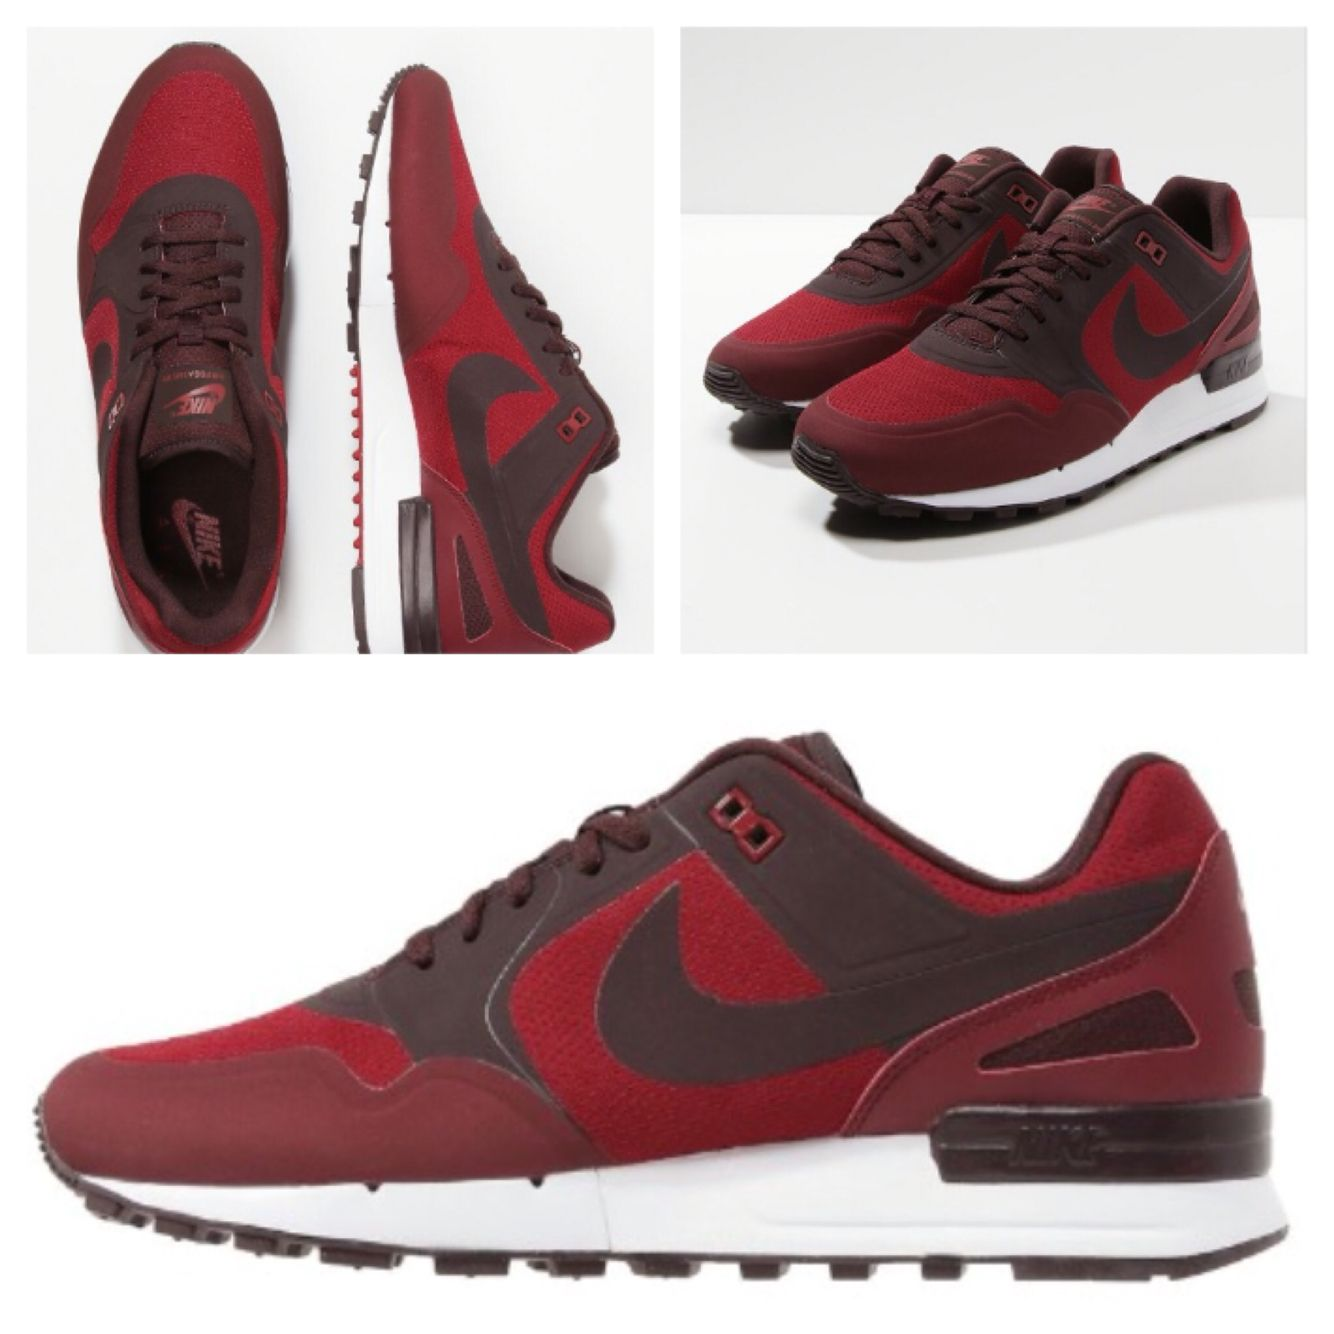 new product dcfd1 89419 Nike Air Pegasus 89 team red mahogany game red